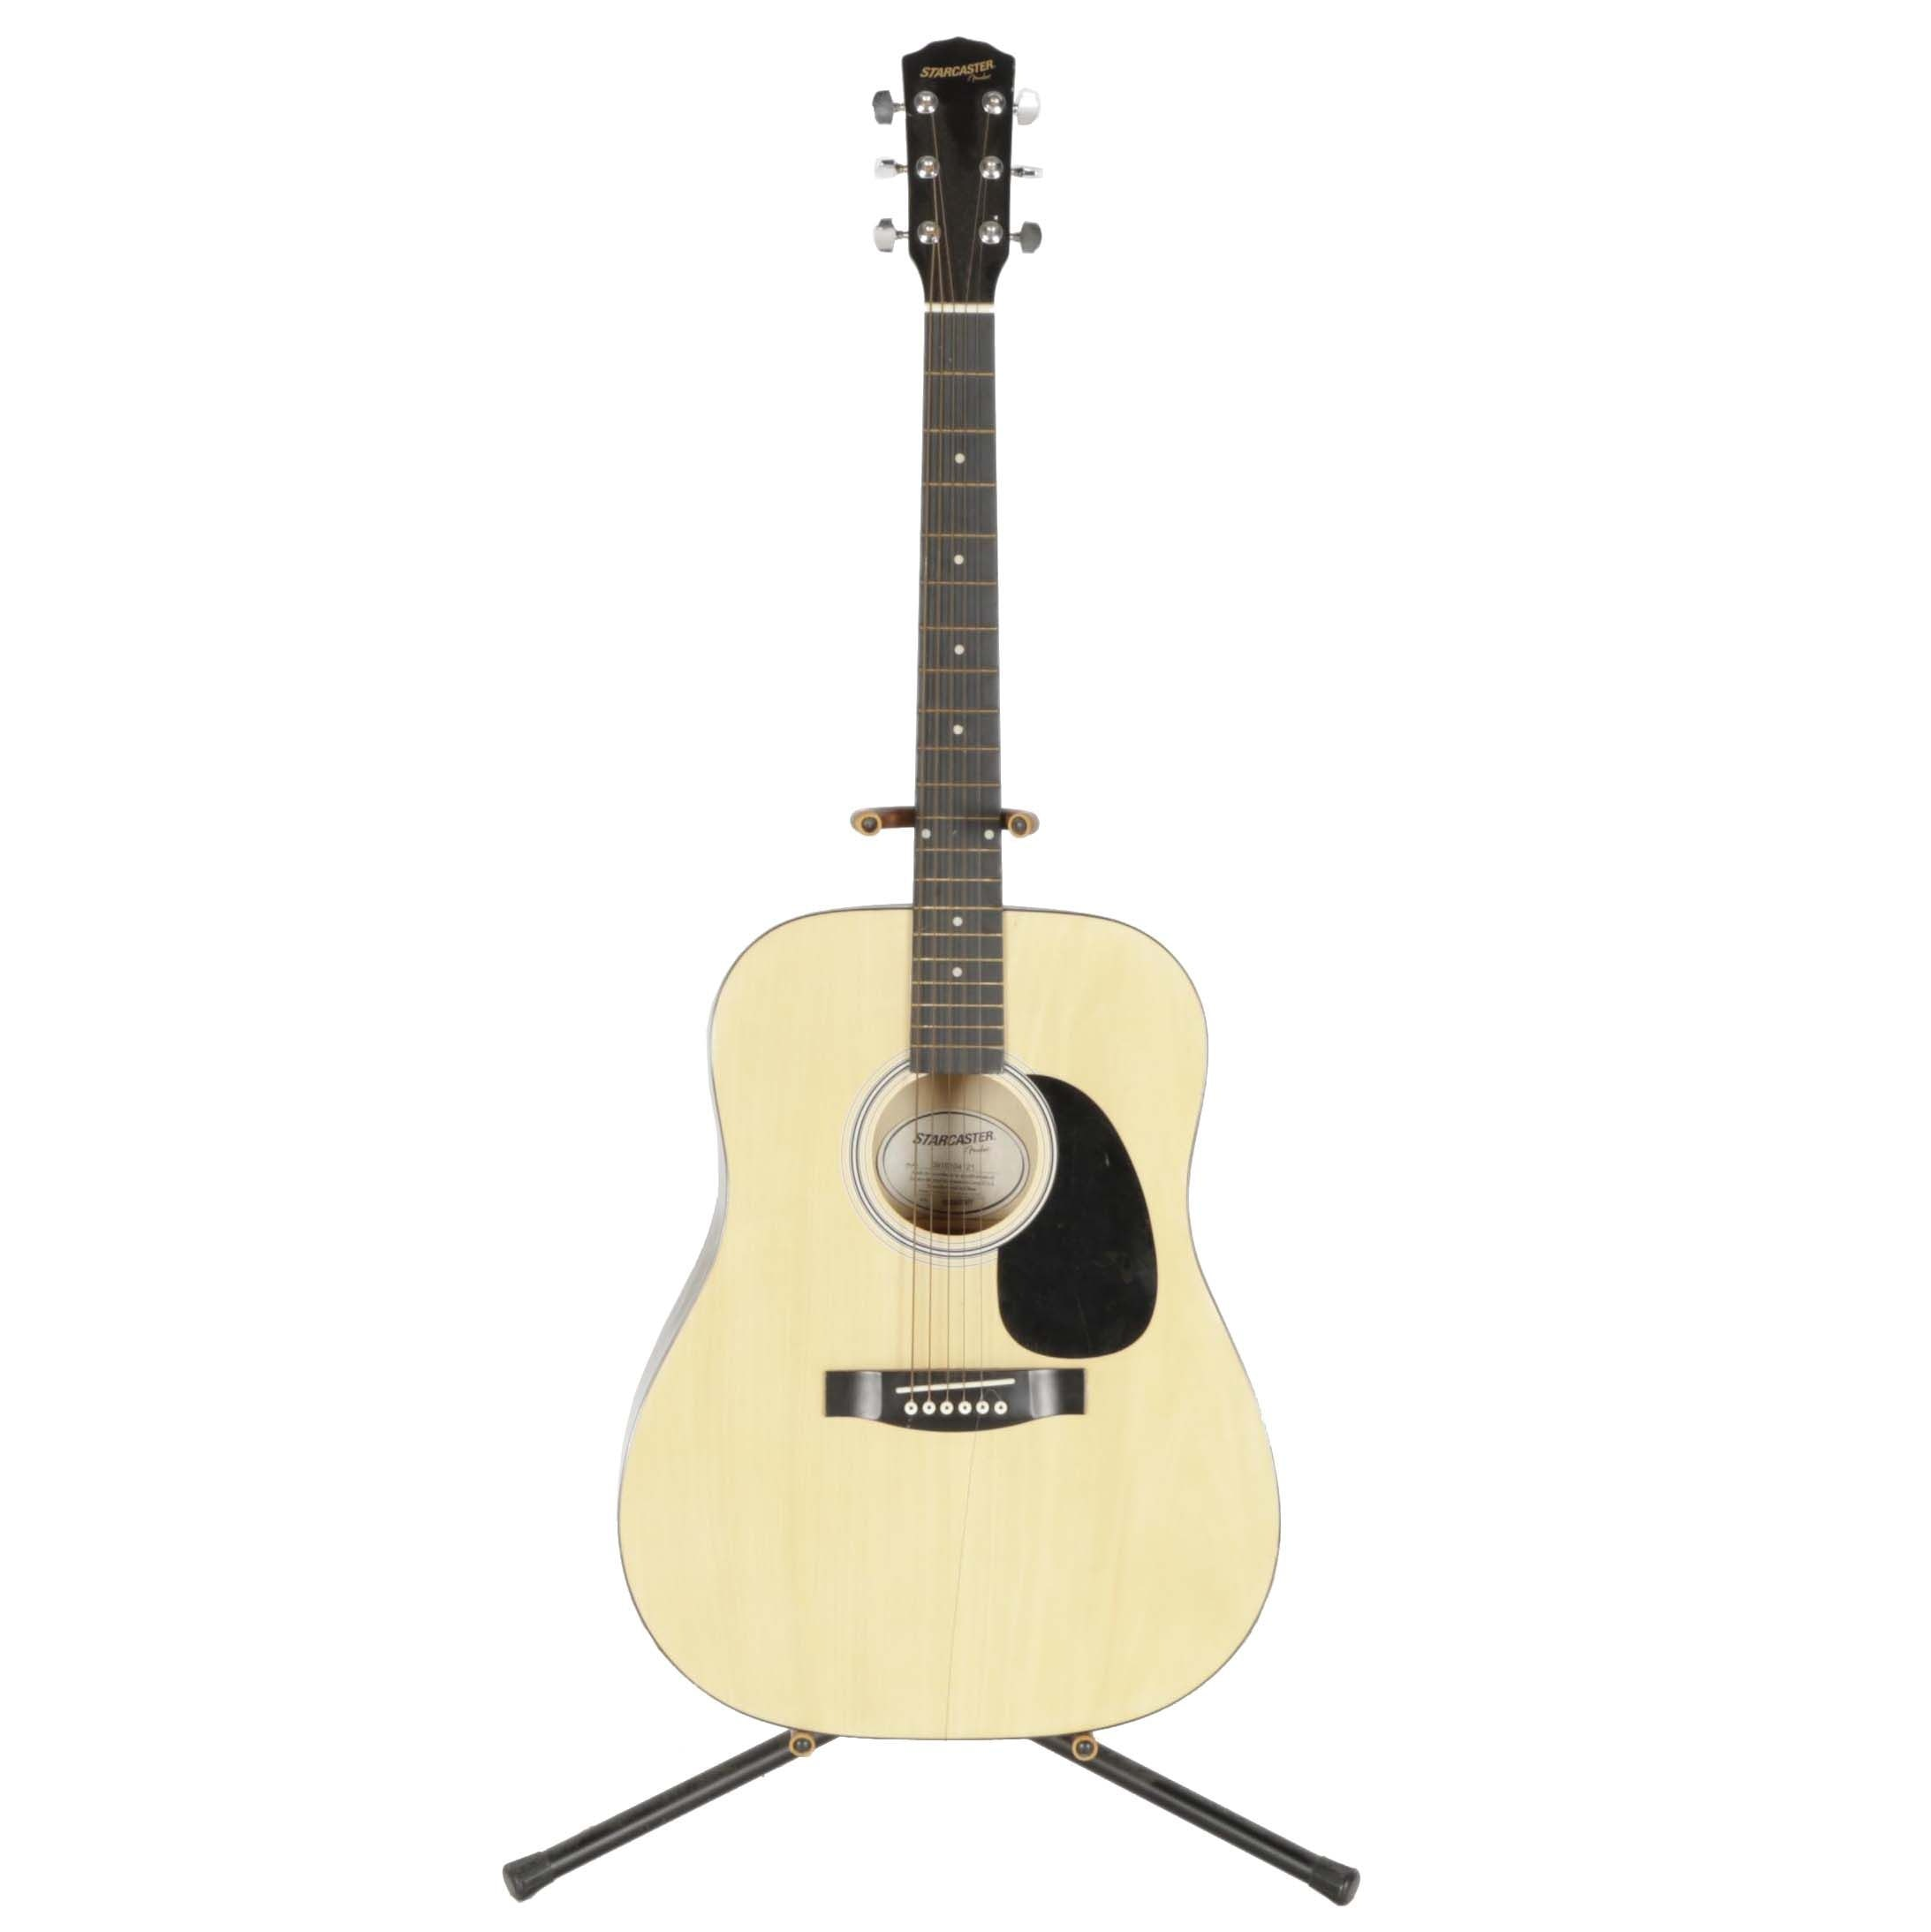 Fender Starcaster Dreadnought Style Acoustic Guitar